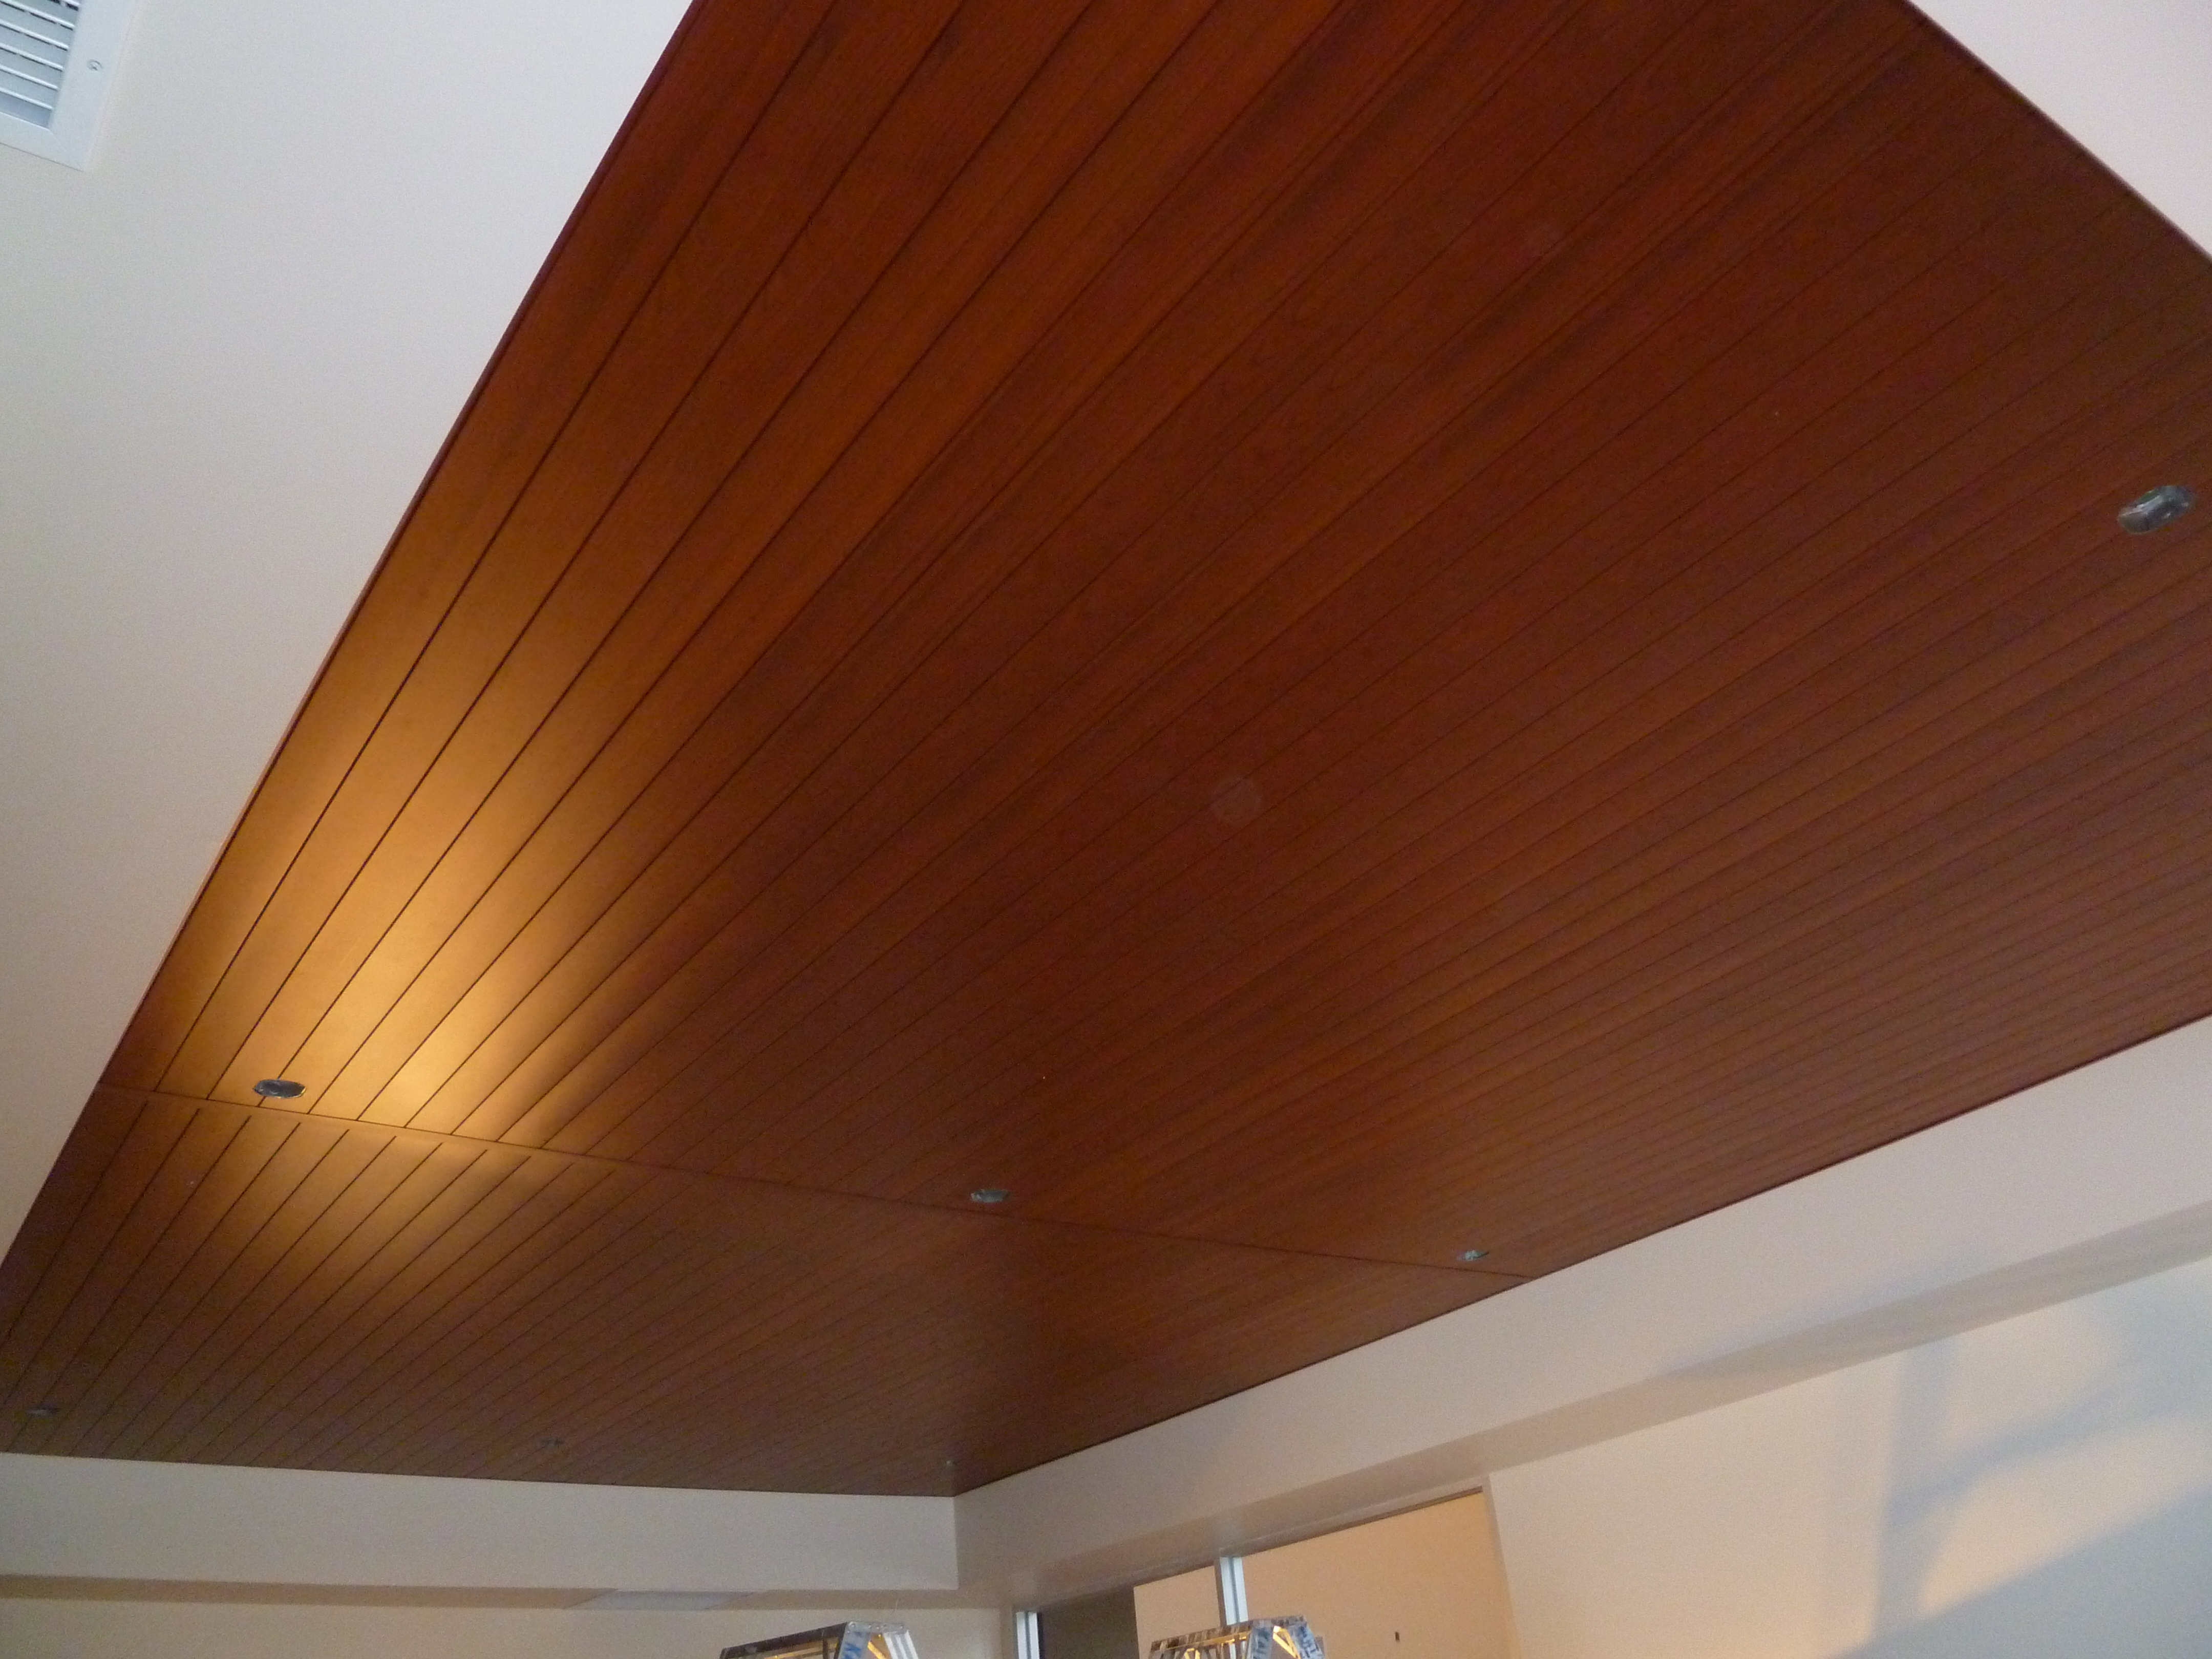 commercial renovations ceiling cladding